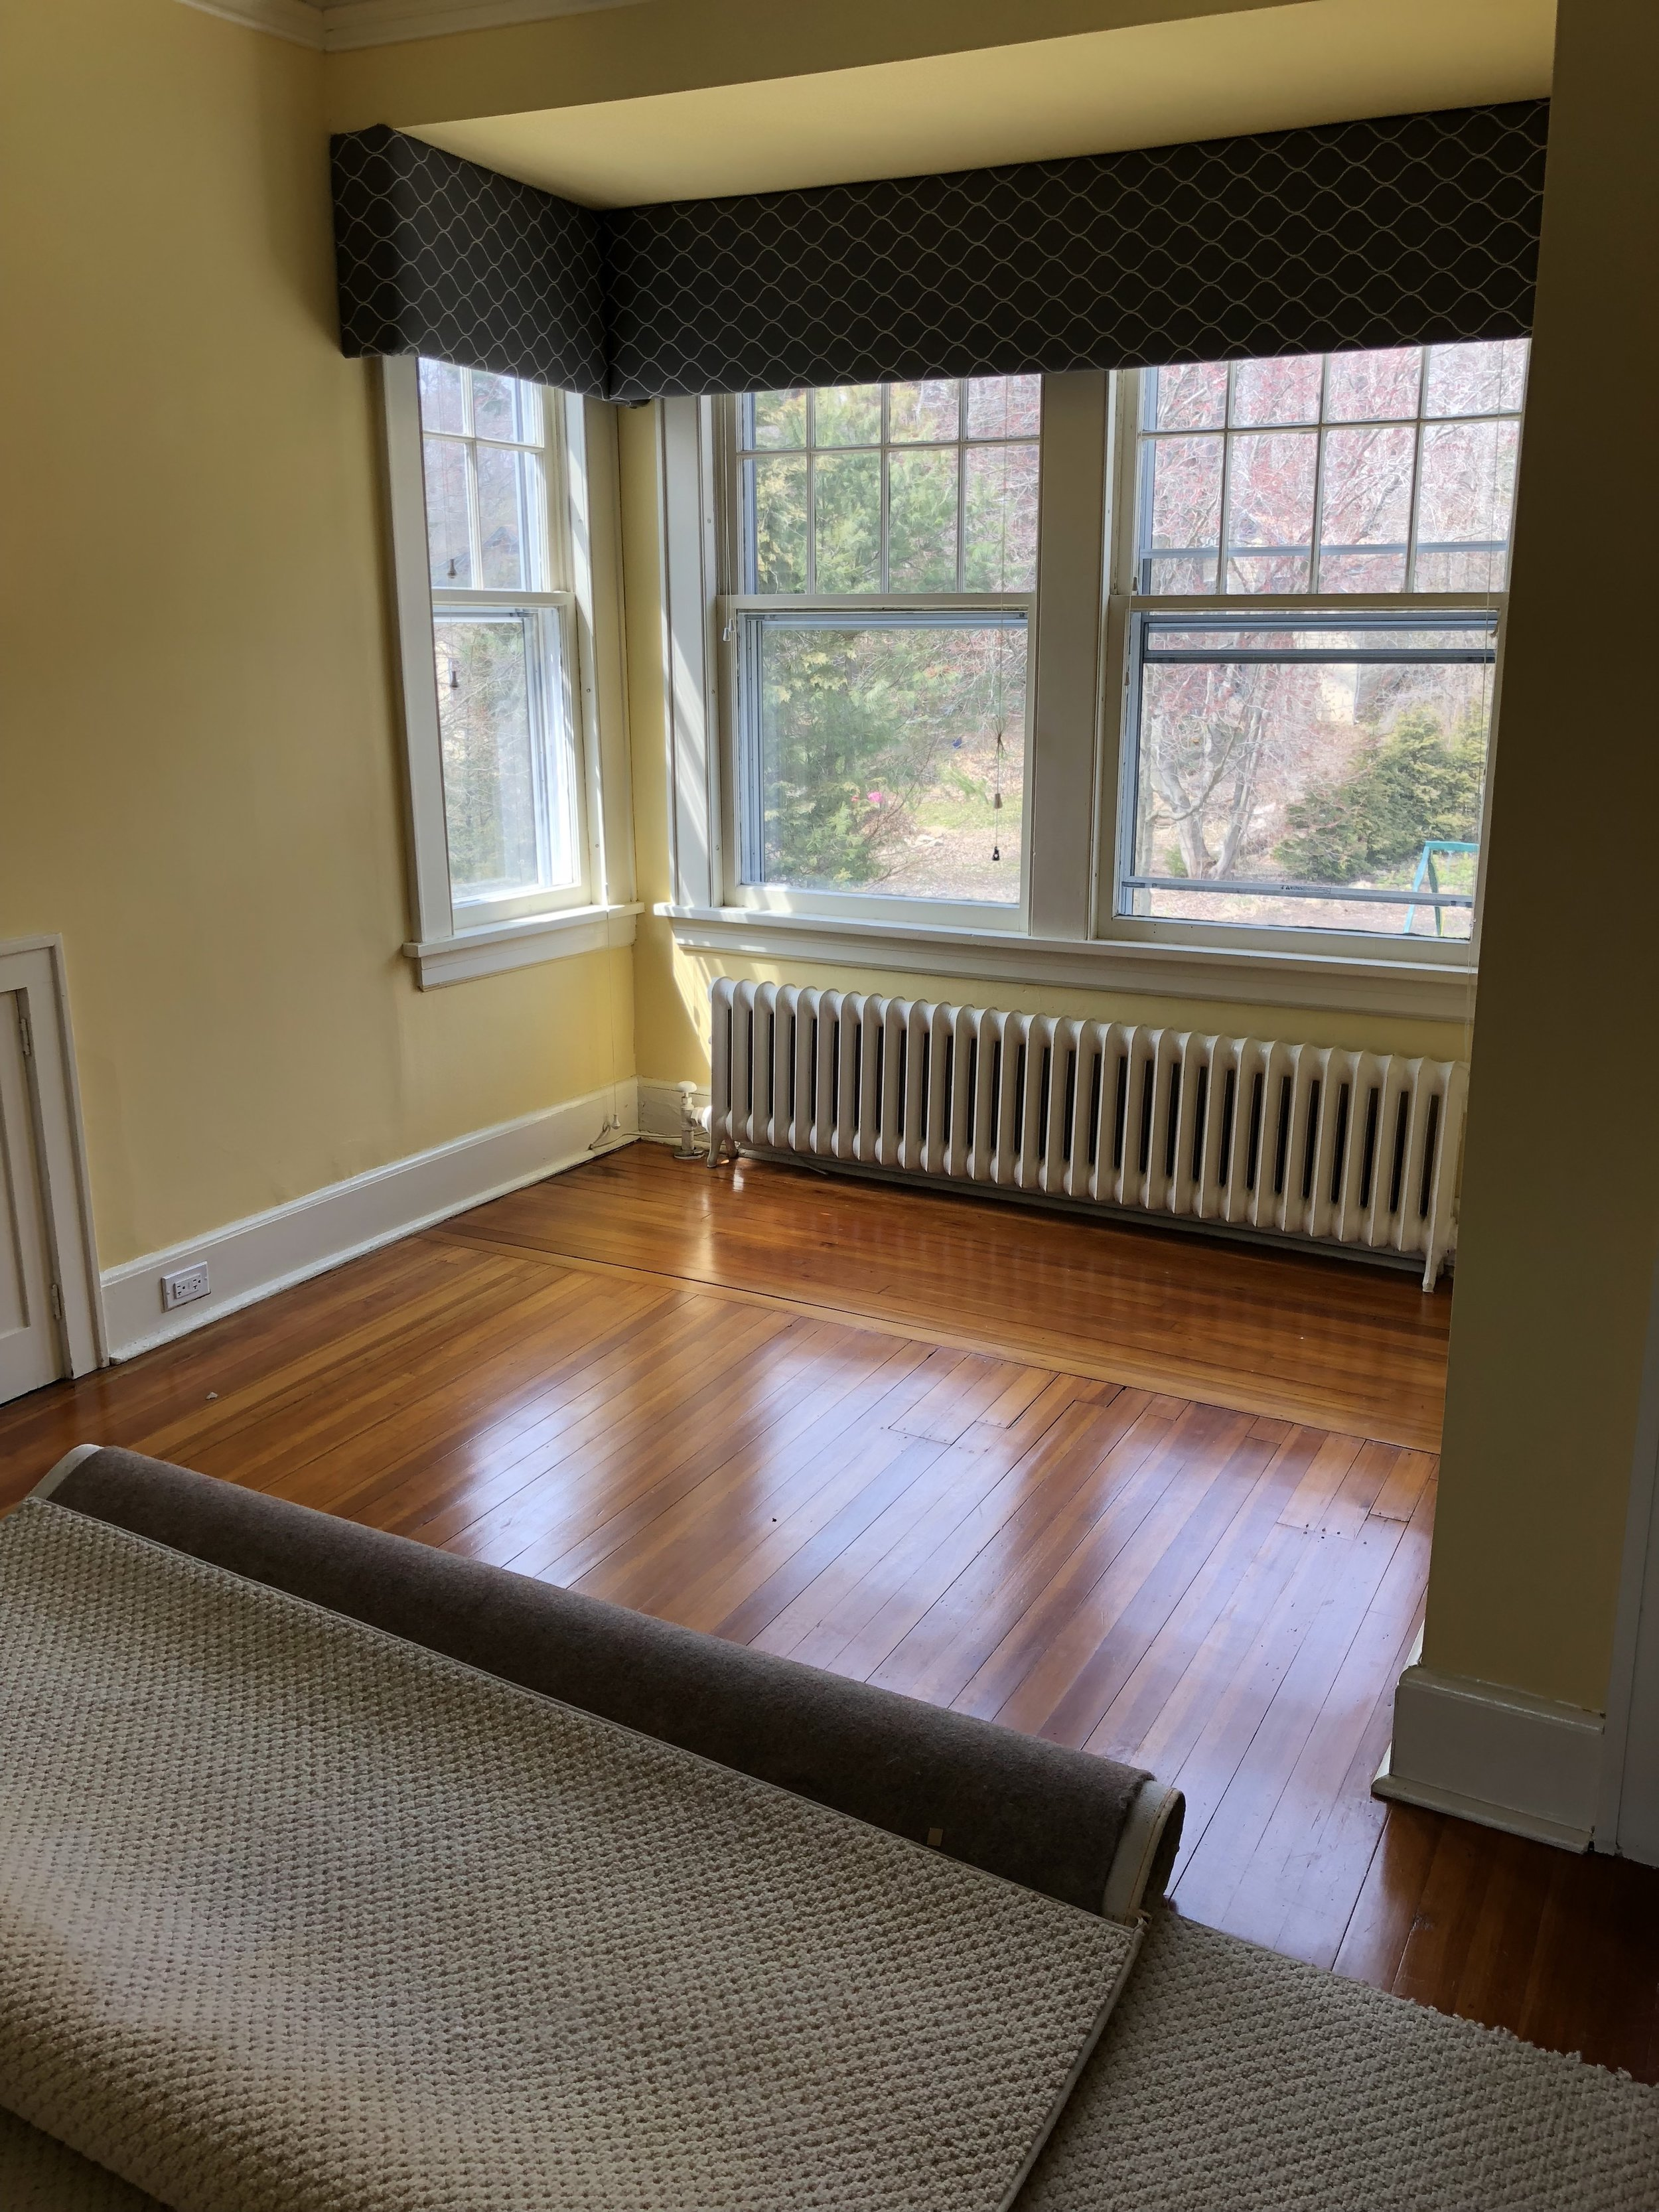 "The ""before"".  The different orientation of the hardwood floor in this part of the room drives me insane! It must have been patched (poorly) at some point, and it creates a major eye sore."